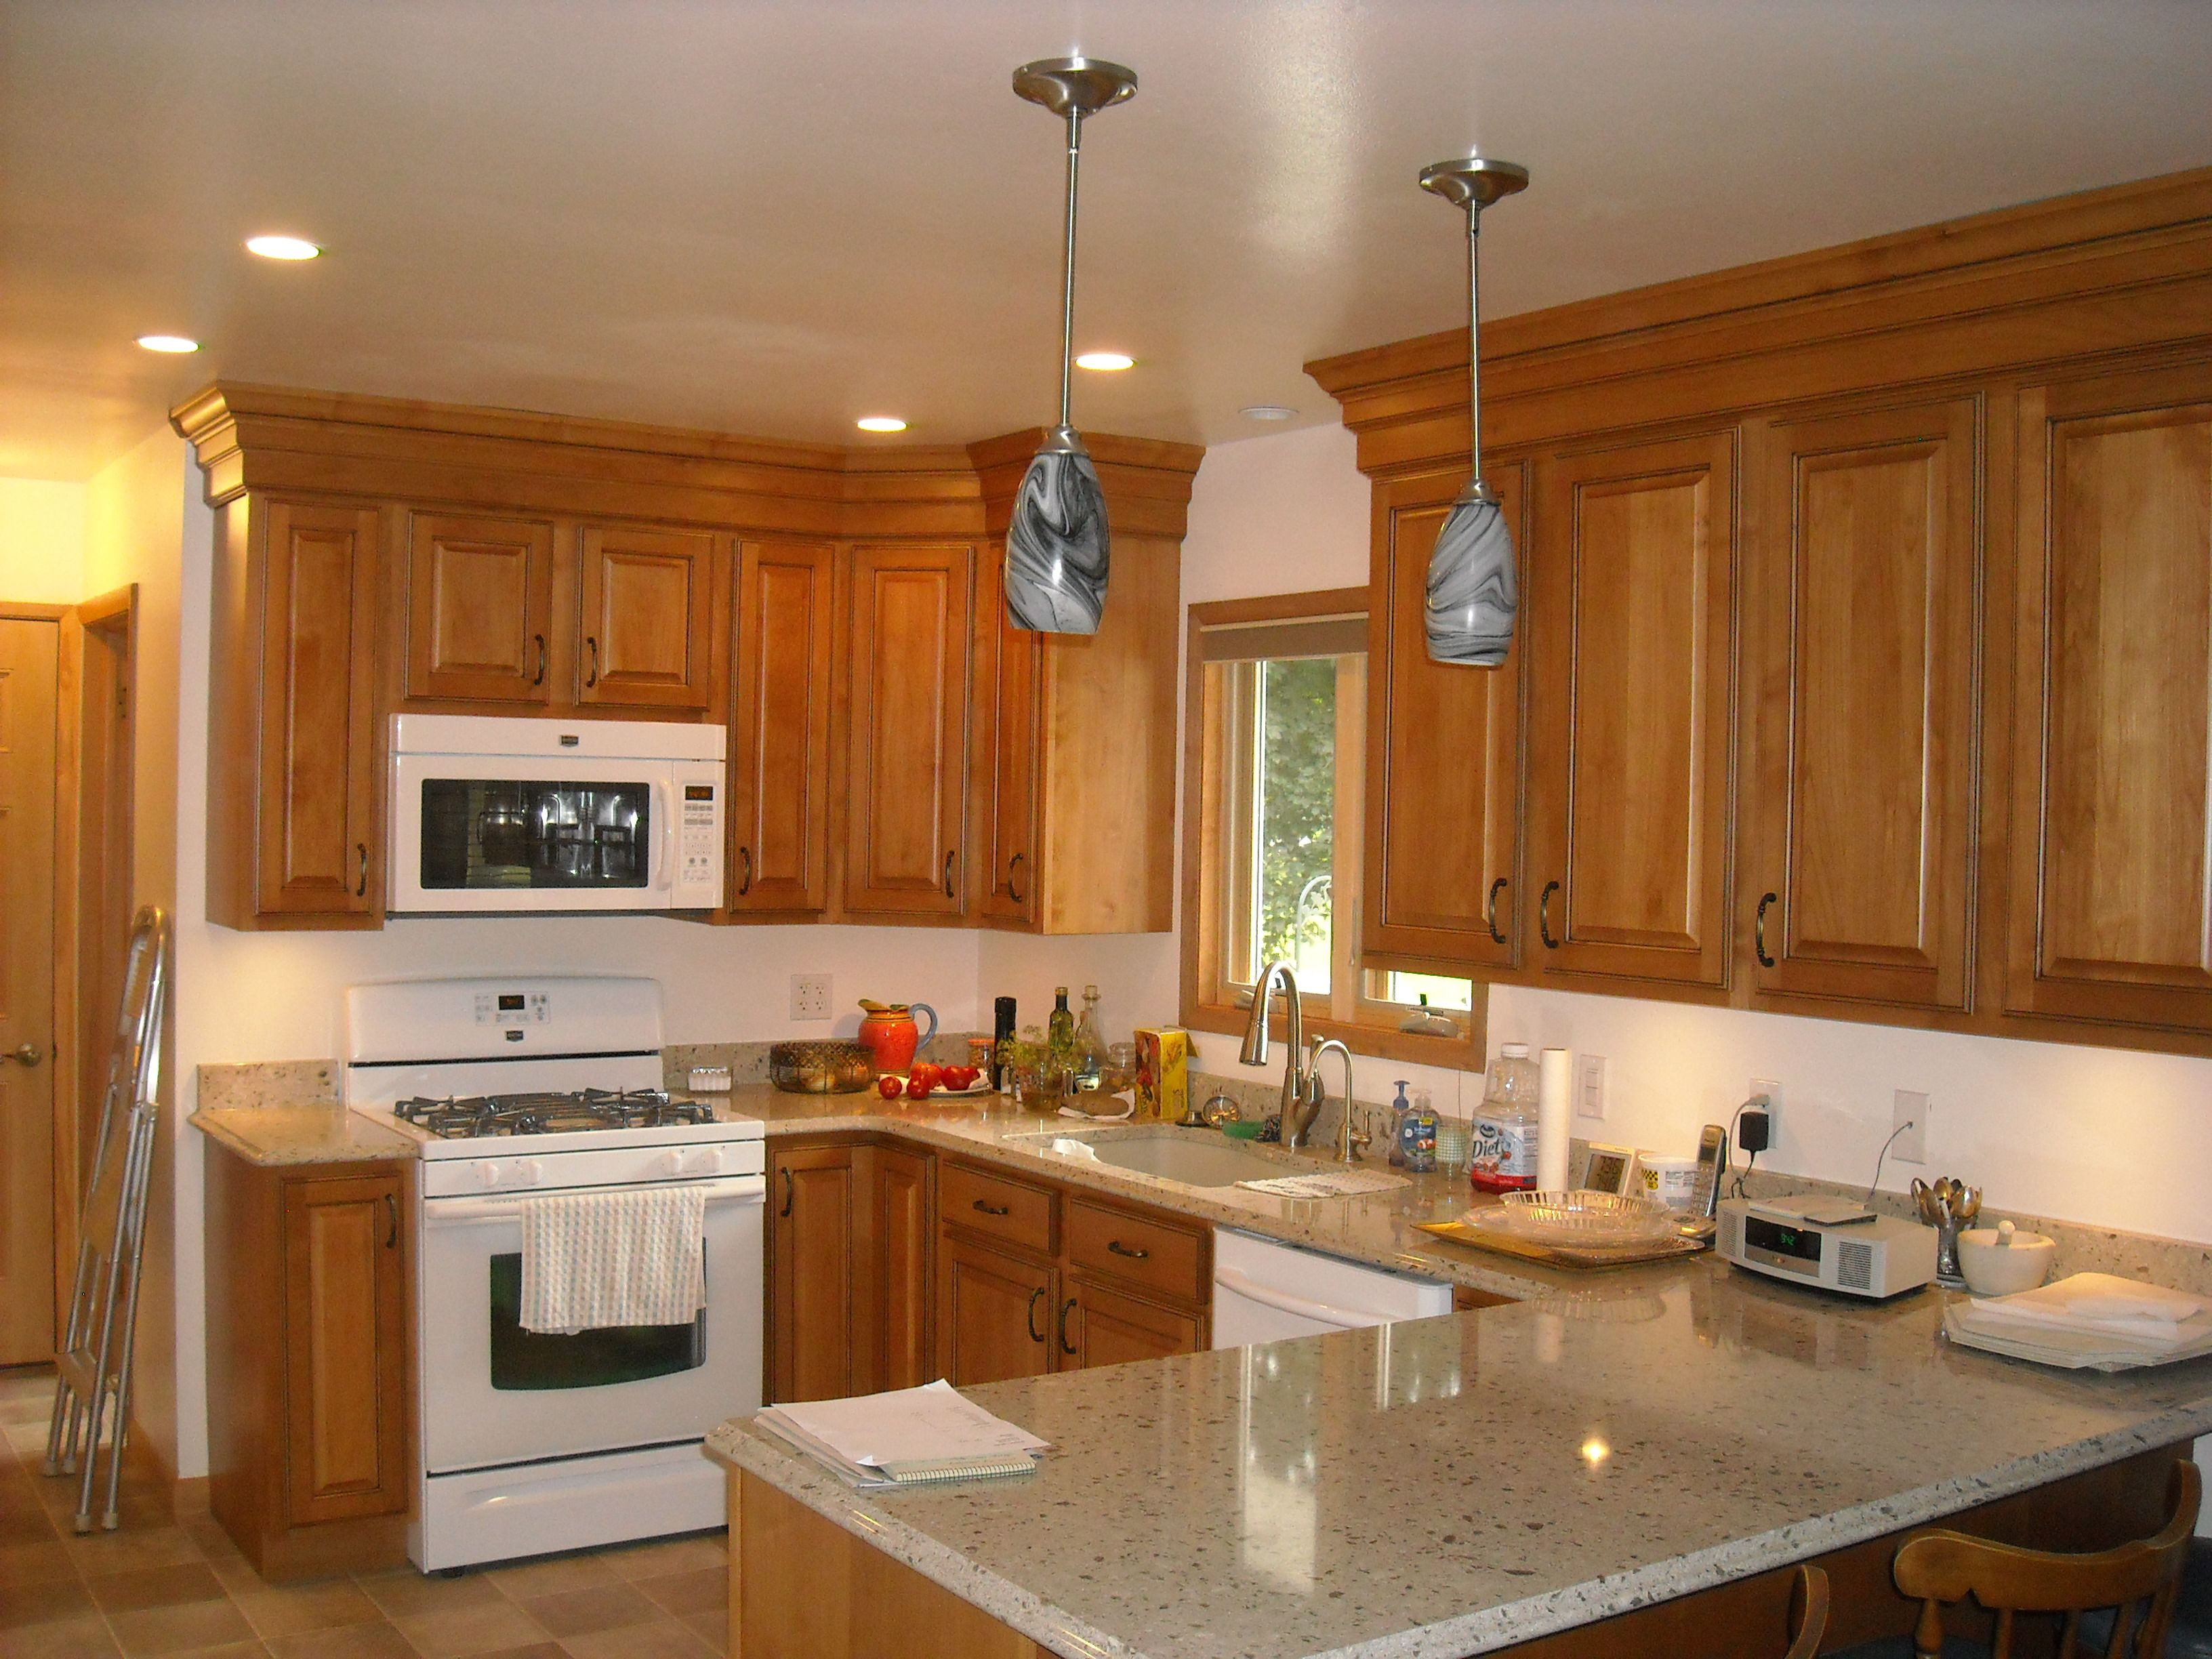 Kitchen Design: Adding Moldings to Upper Cabinets ...